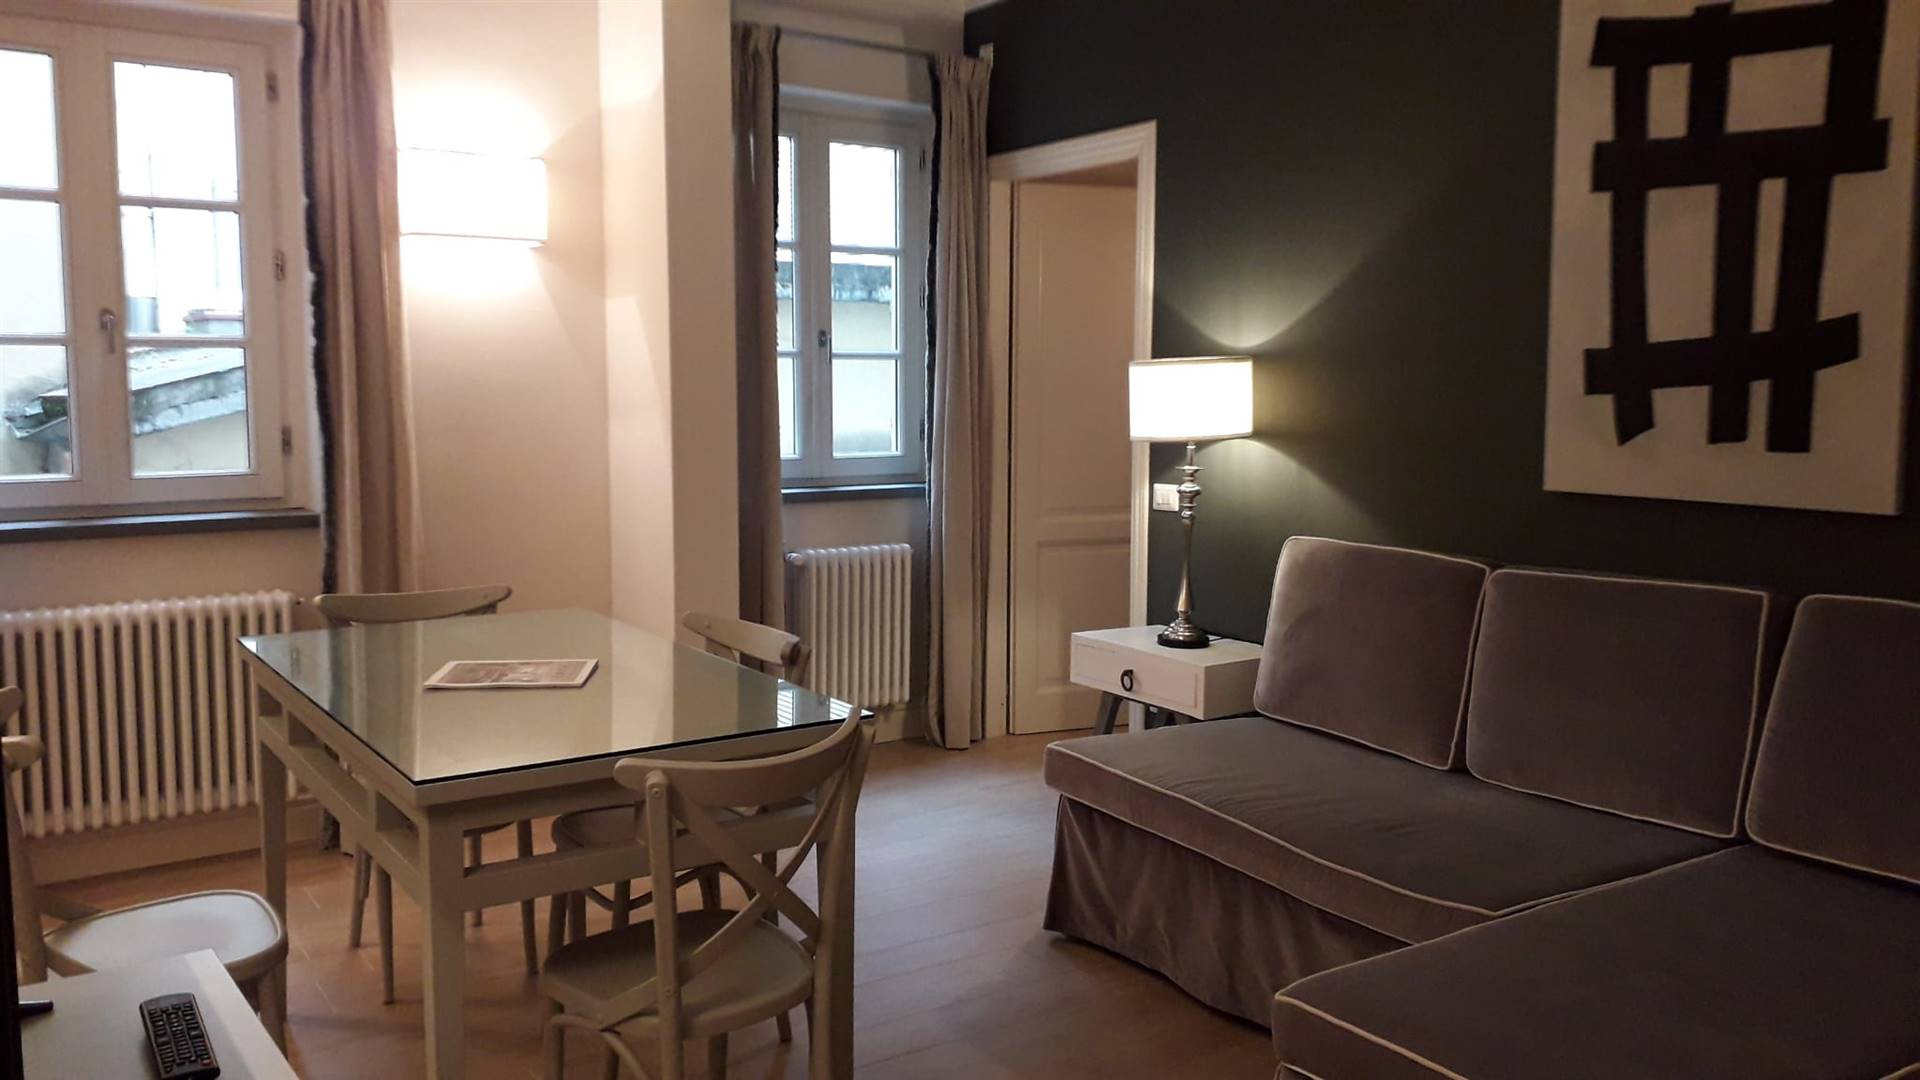 Duomo, FIRENZE, Apartment for rent of 47 Sq. mt., Heating Centralized, Energetic class: A+, Epi: 72,2 kwh/m3 year, placed at 1°, composed by: 2 Rooms,